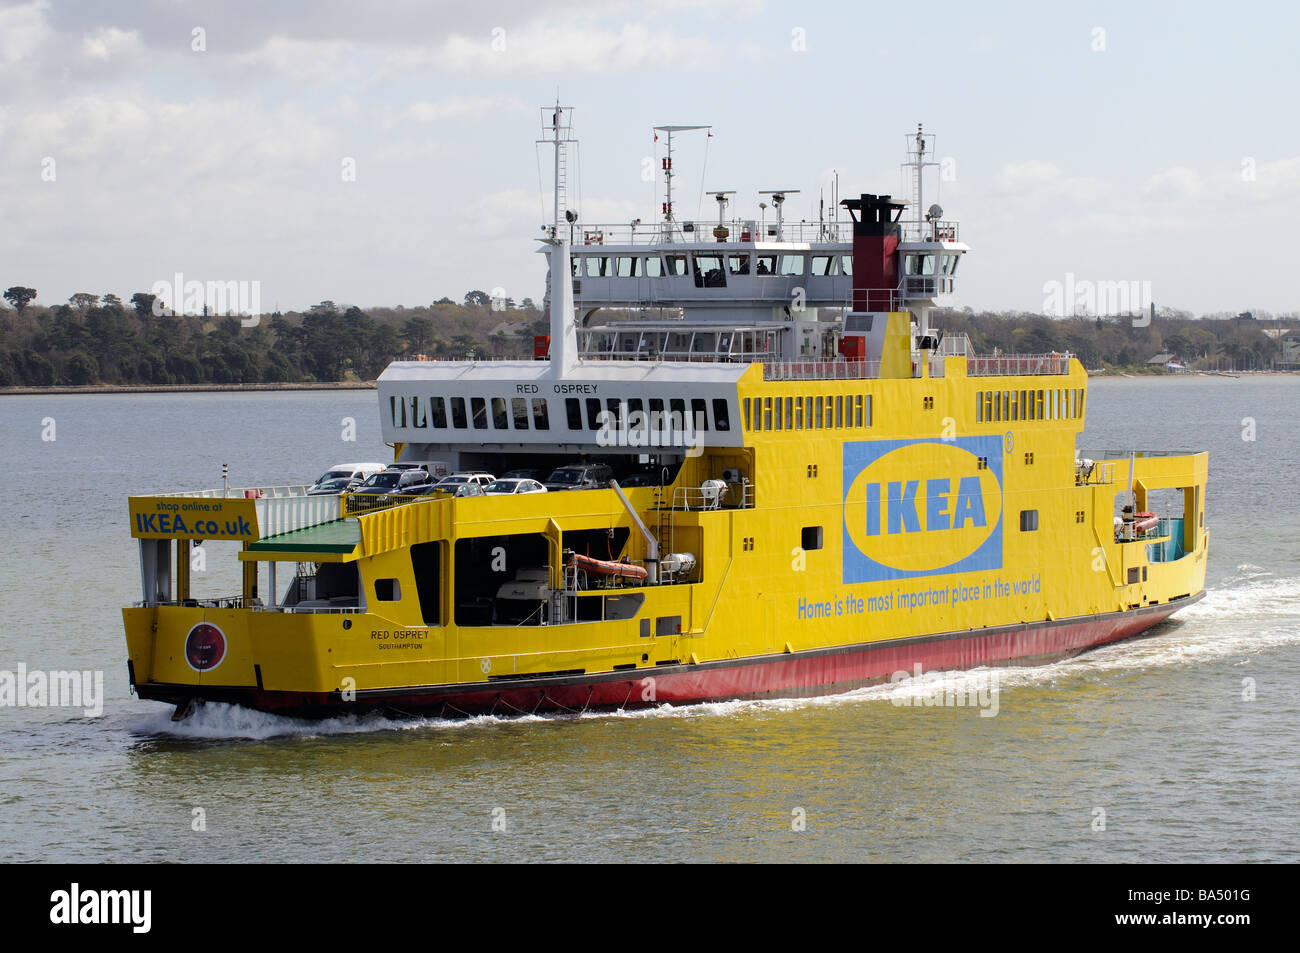 IKEA company advert on the side of a ship as it approaches the Port of Southampton The vessel is a roro ferry called - Stock Image